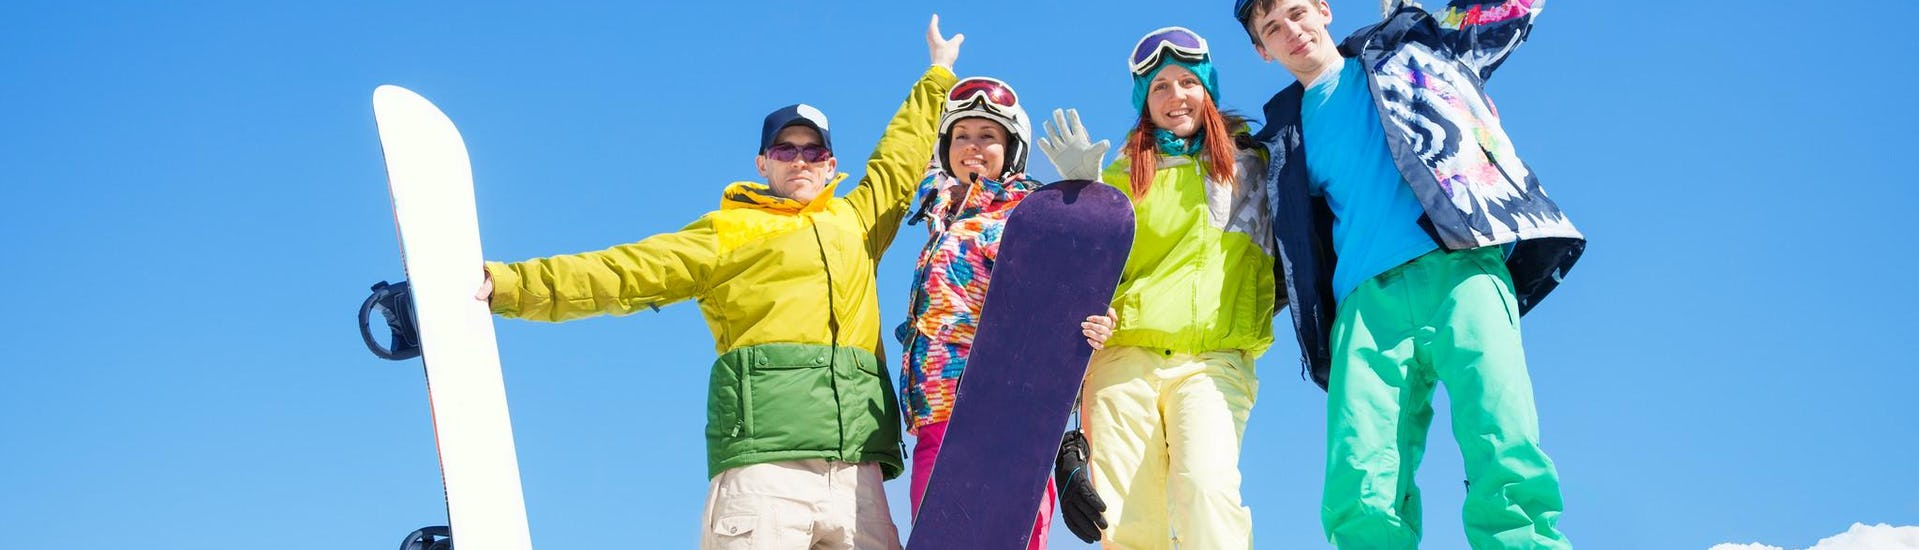 Group of Snowboarder standing on the slope